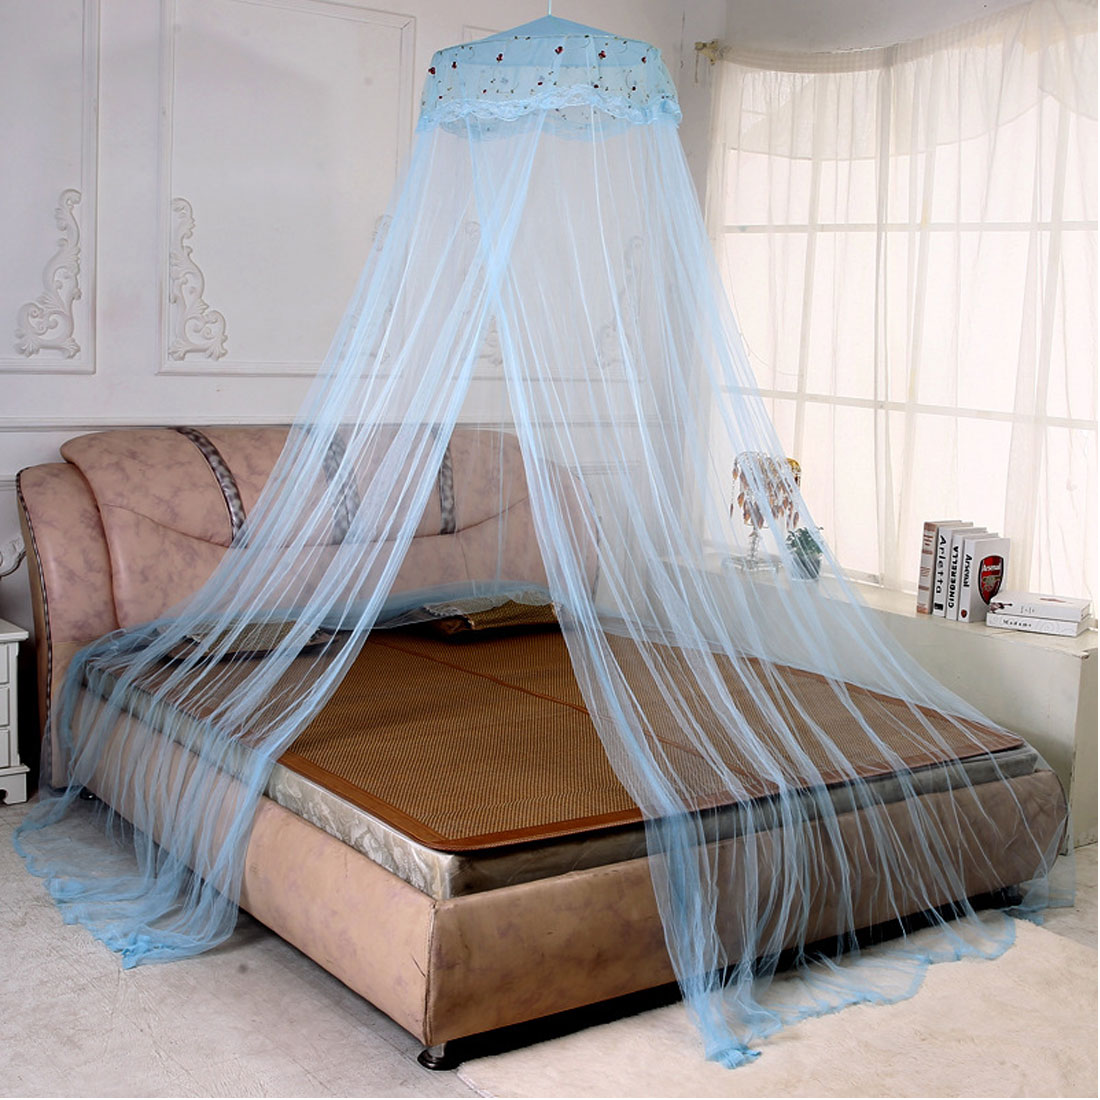 Unique Bargains Bedroom Dome Shaped Bugs  Mosquito Net Bed Canopy WhiteBlue